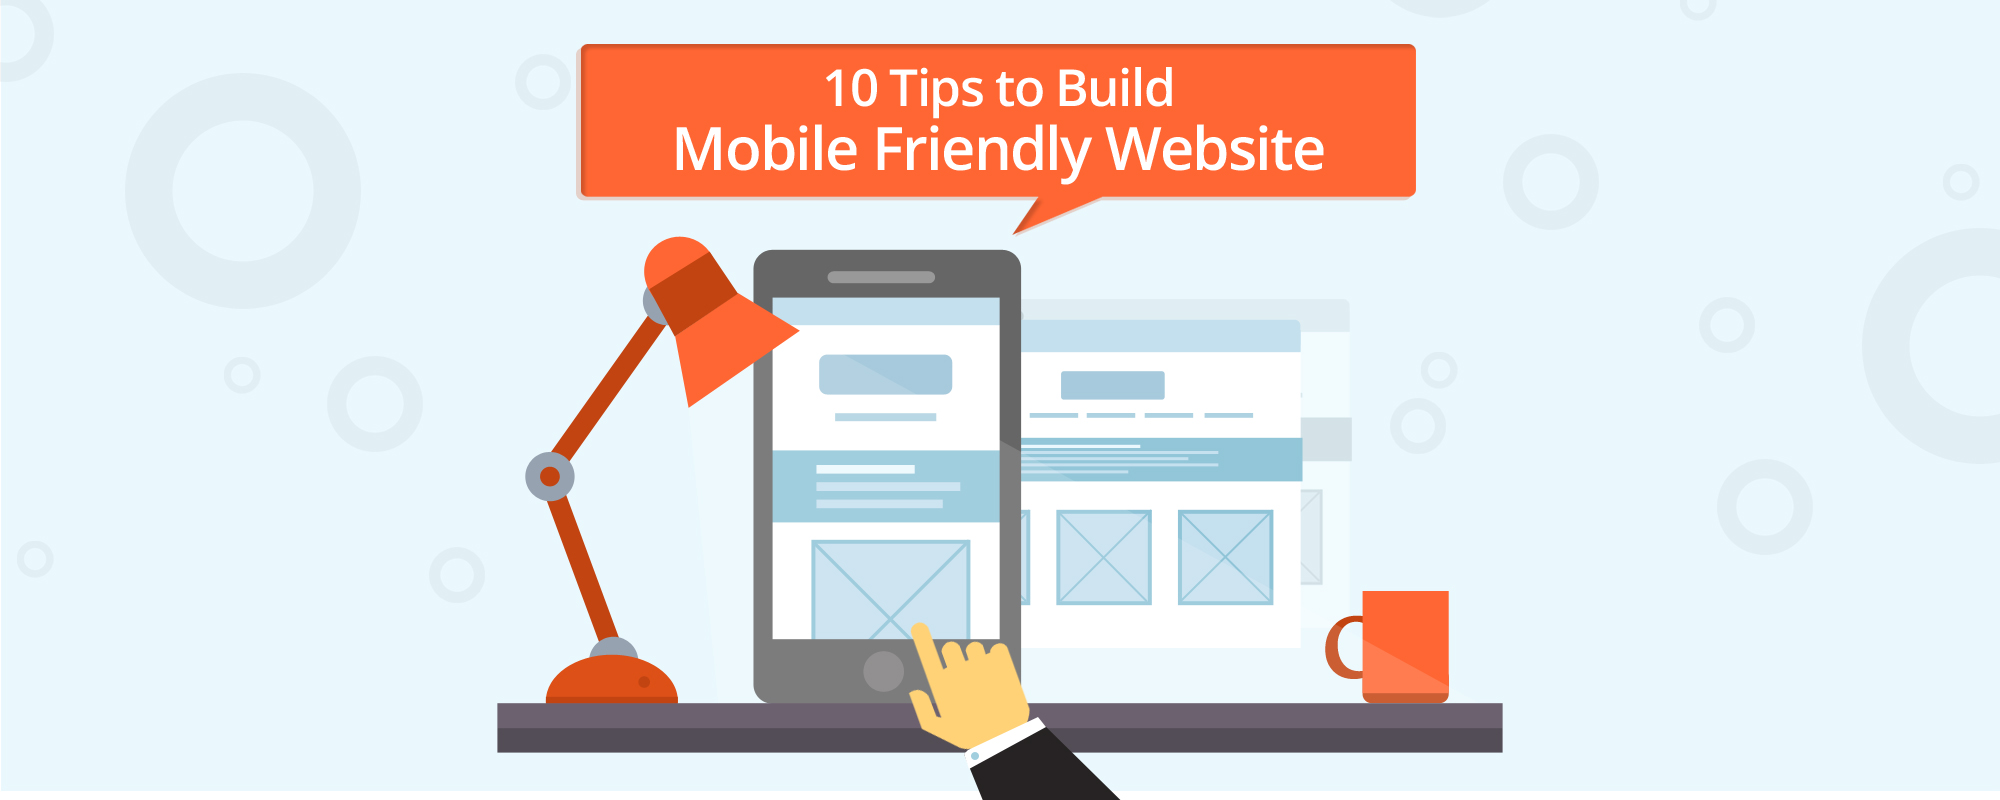 How To Build User Friendly Mobile Website? 10 Super Tips From Experts